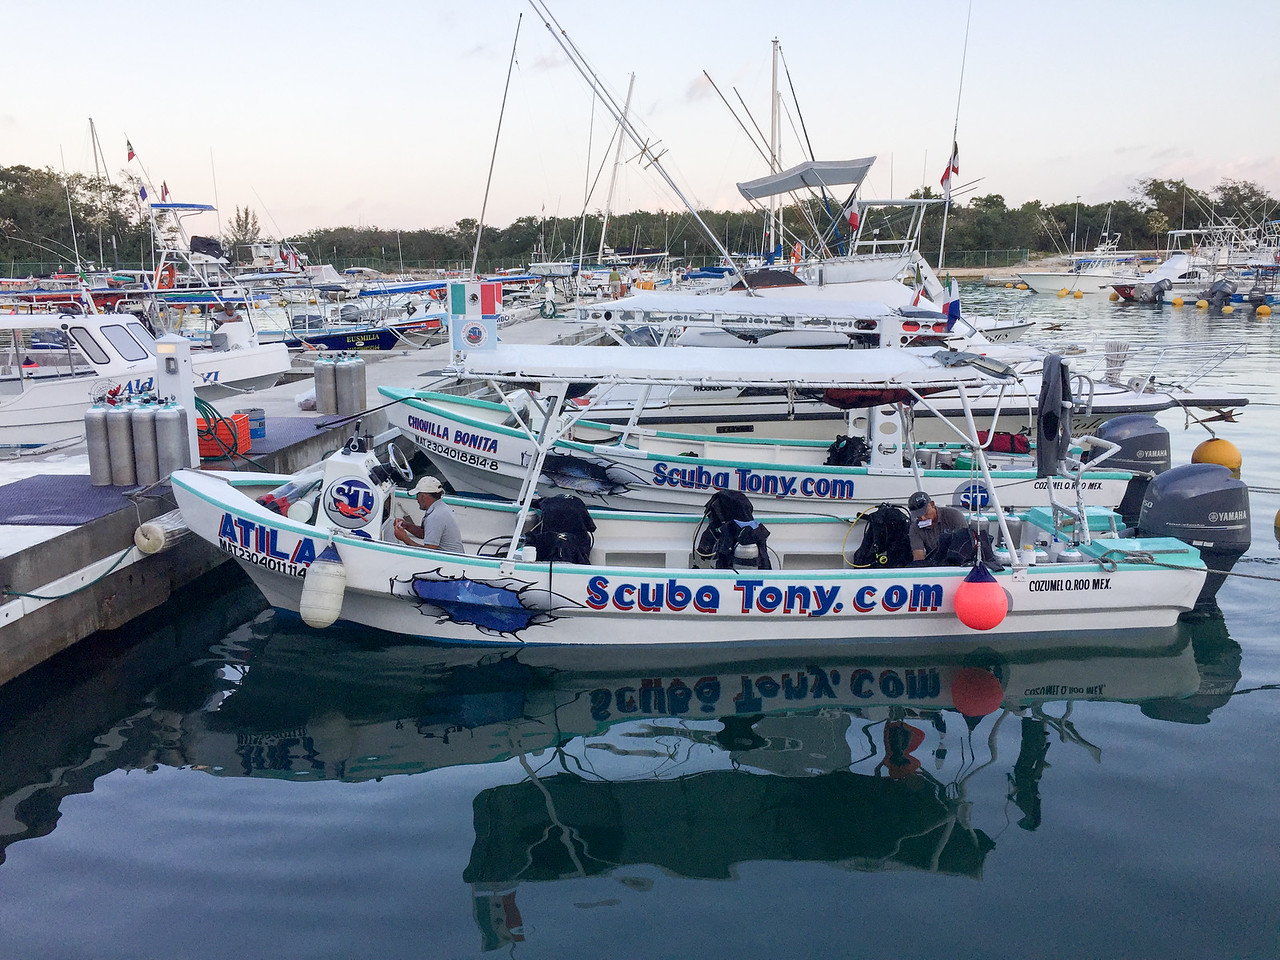 ScubaTony Cozumel boats prepping for morning dives - Cozumel, Mexico - March 2016